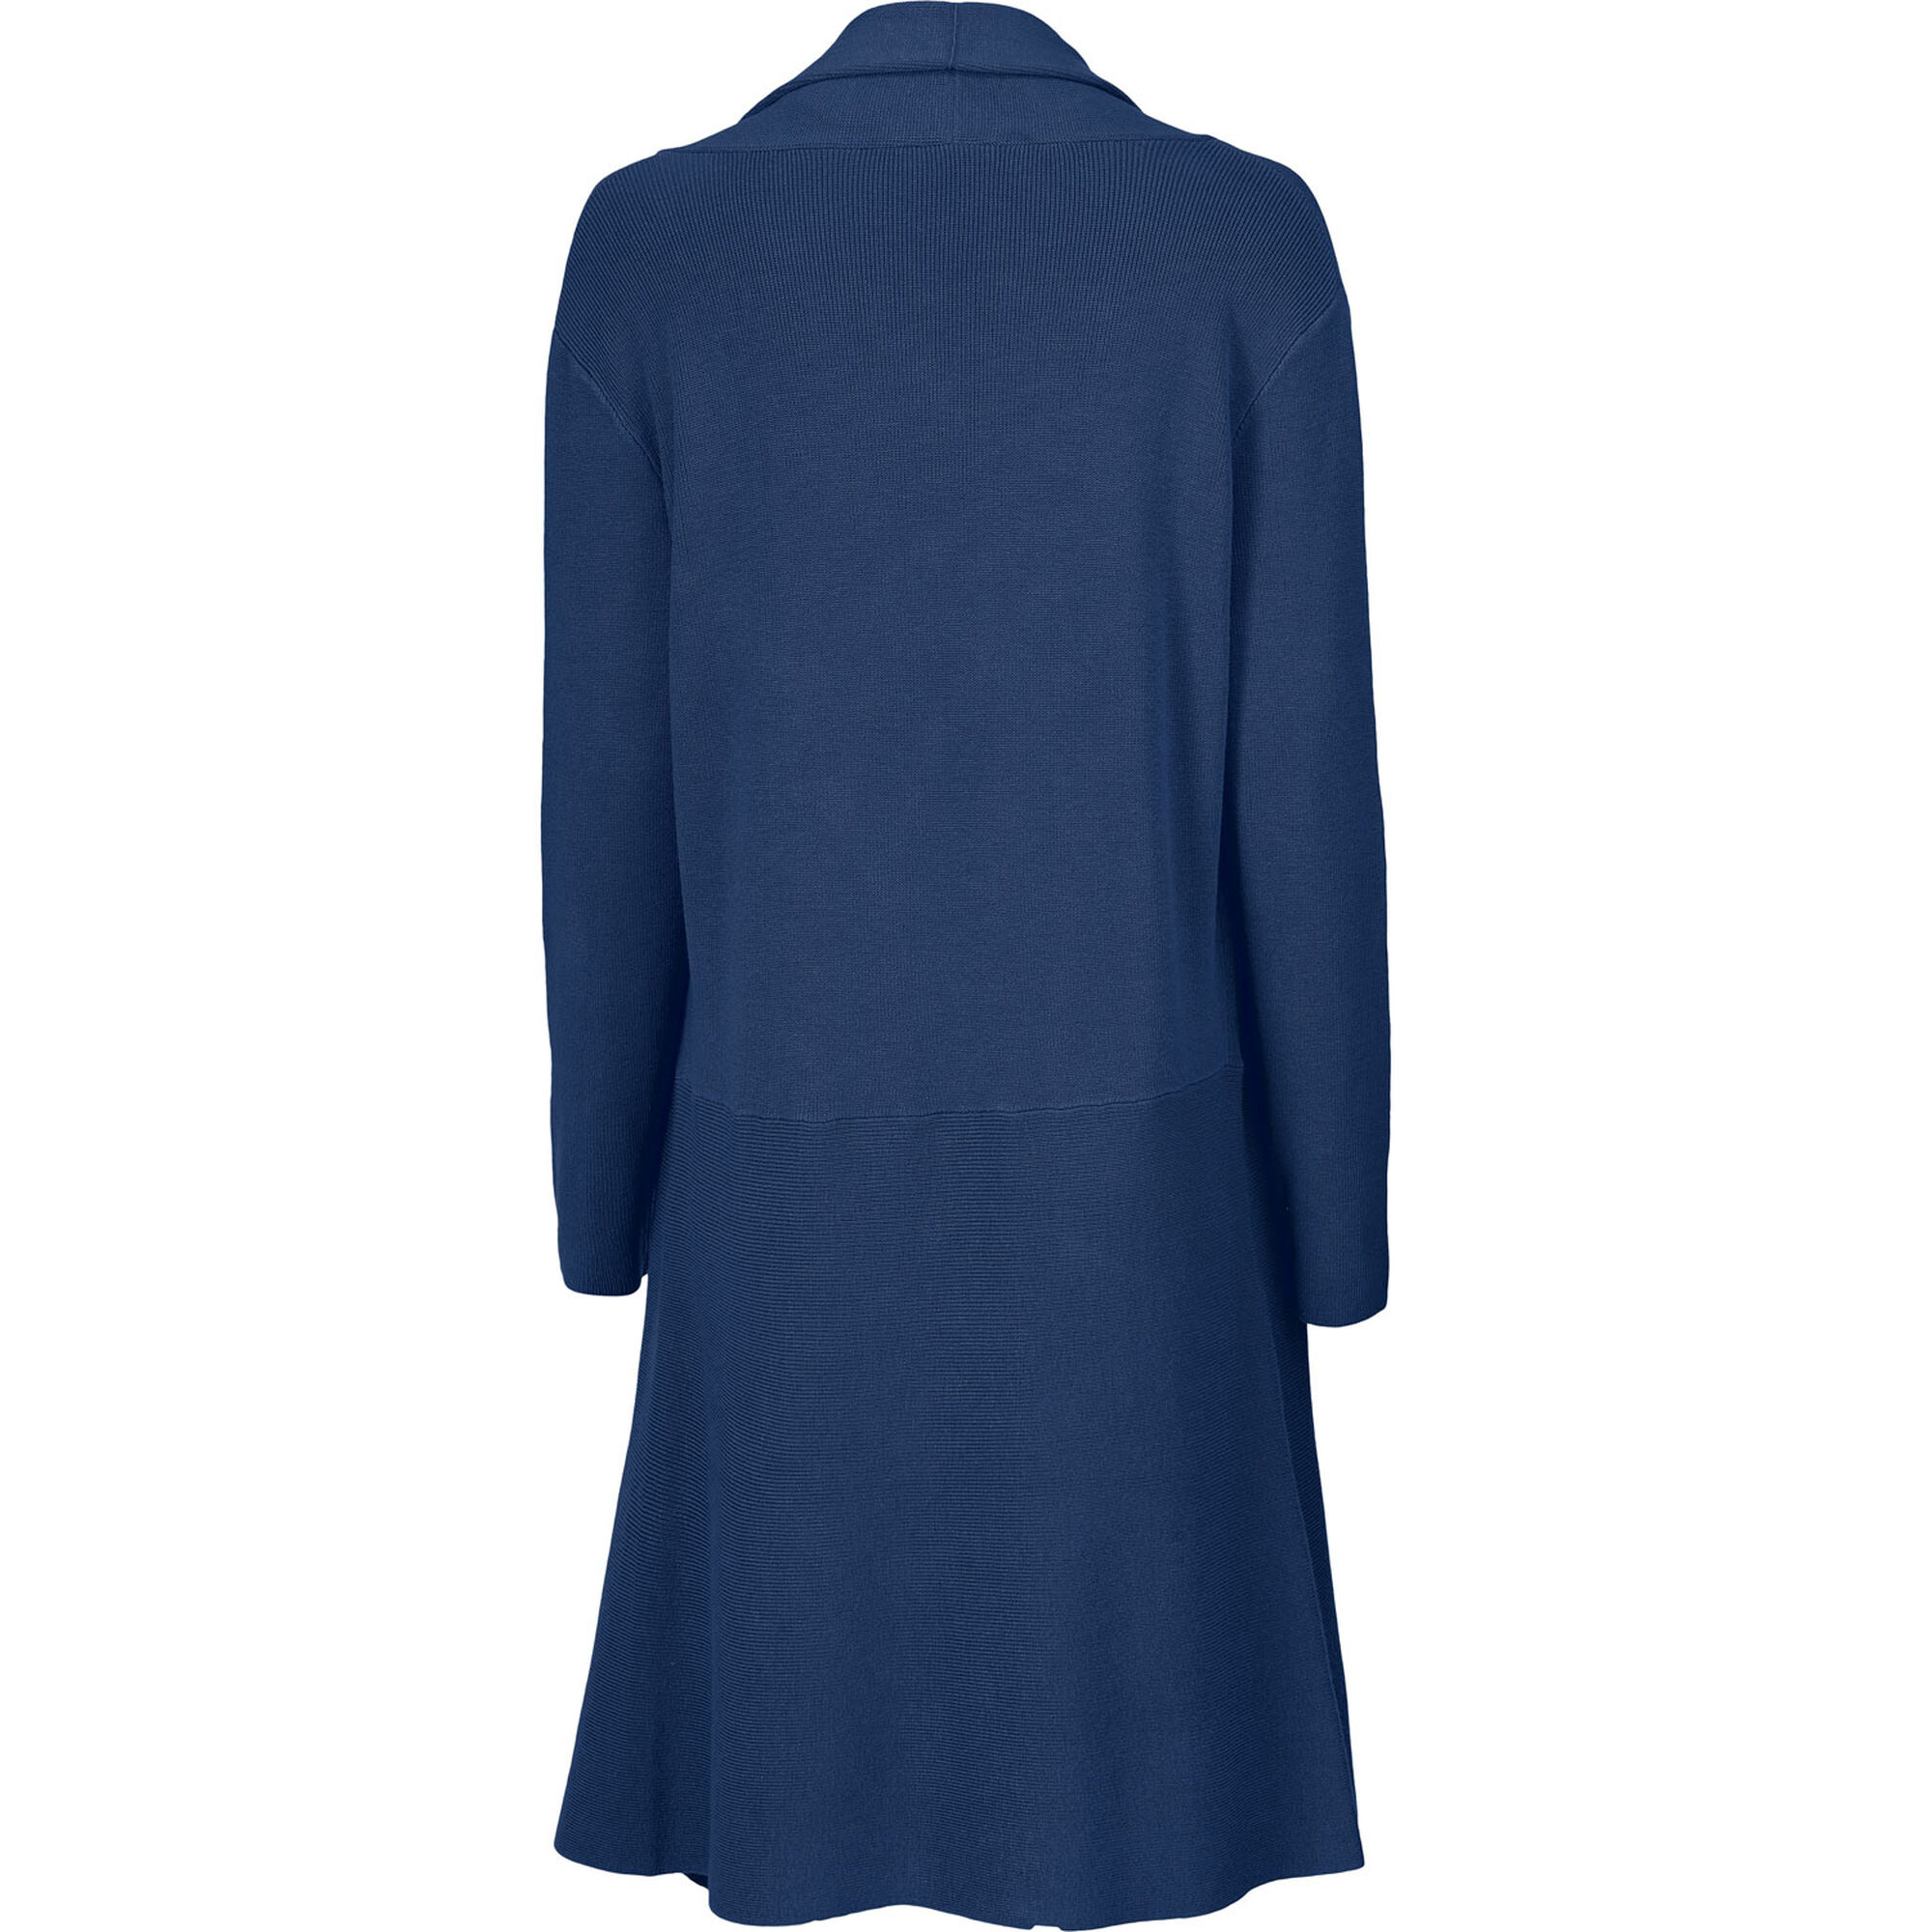 LISA CARDIGAN, Medieval blue, hi-res